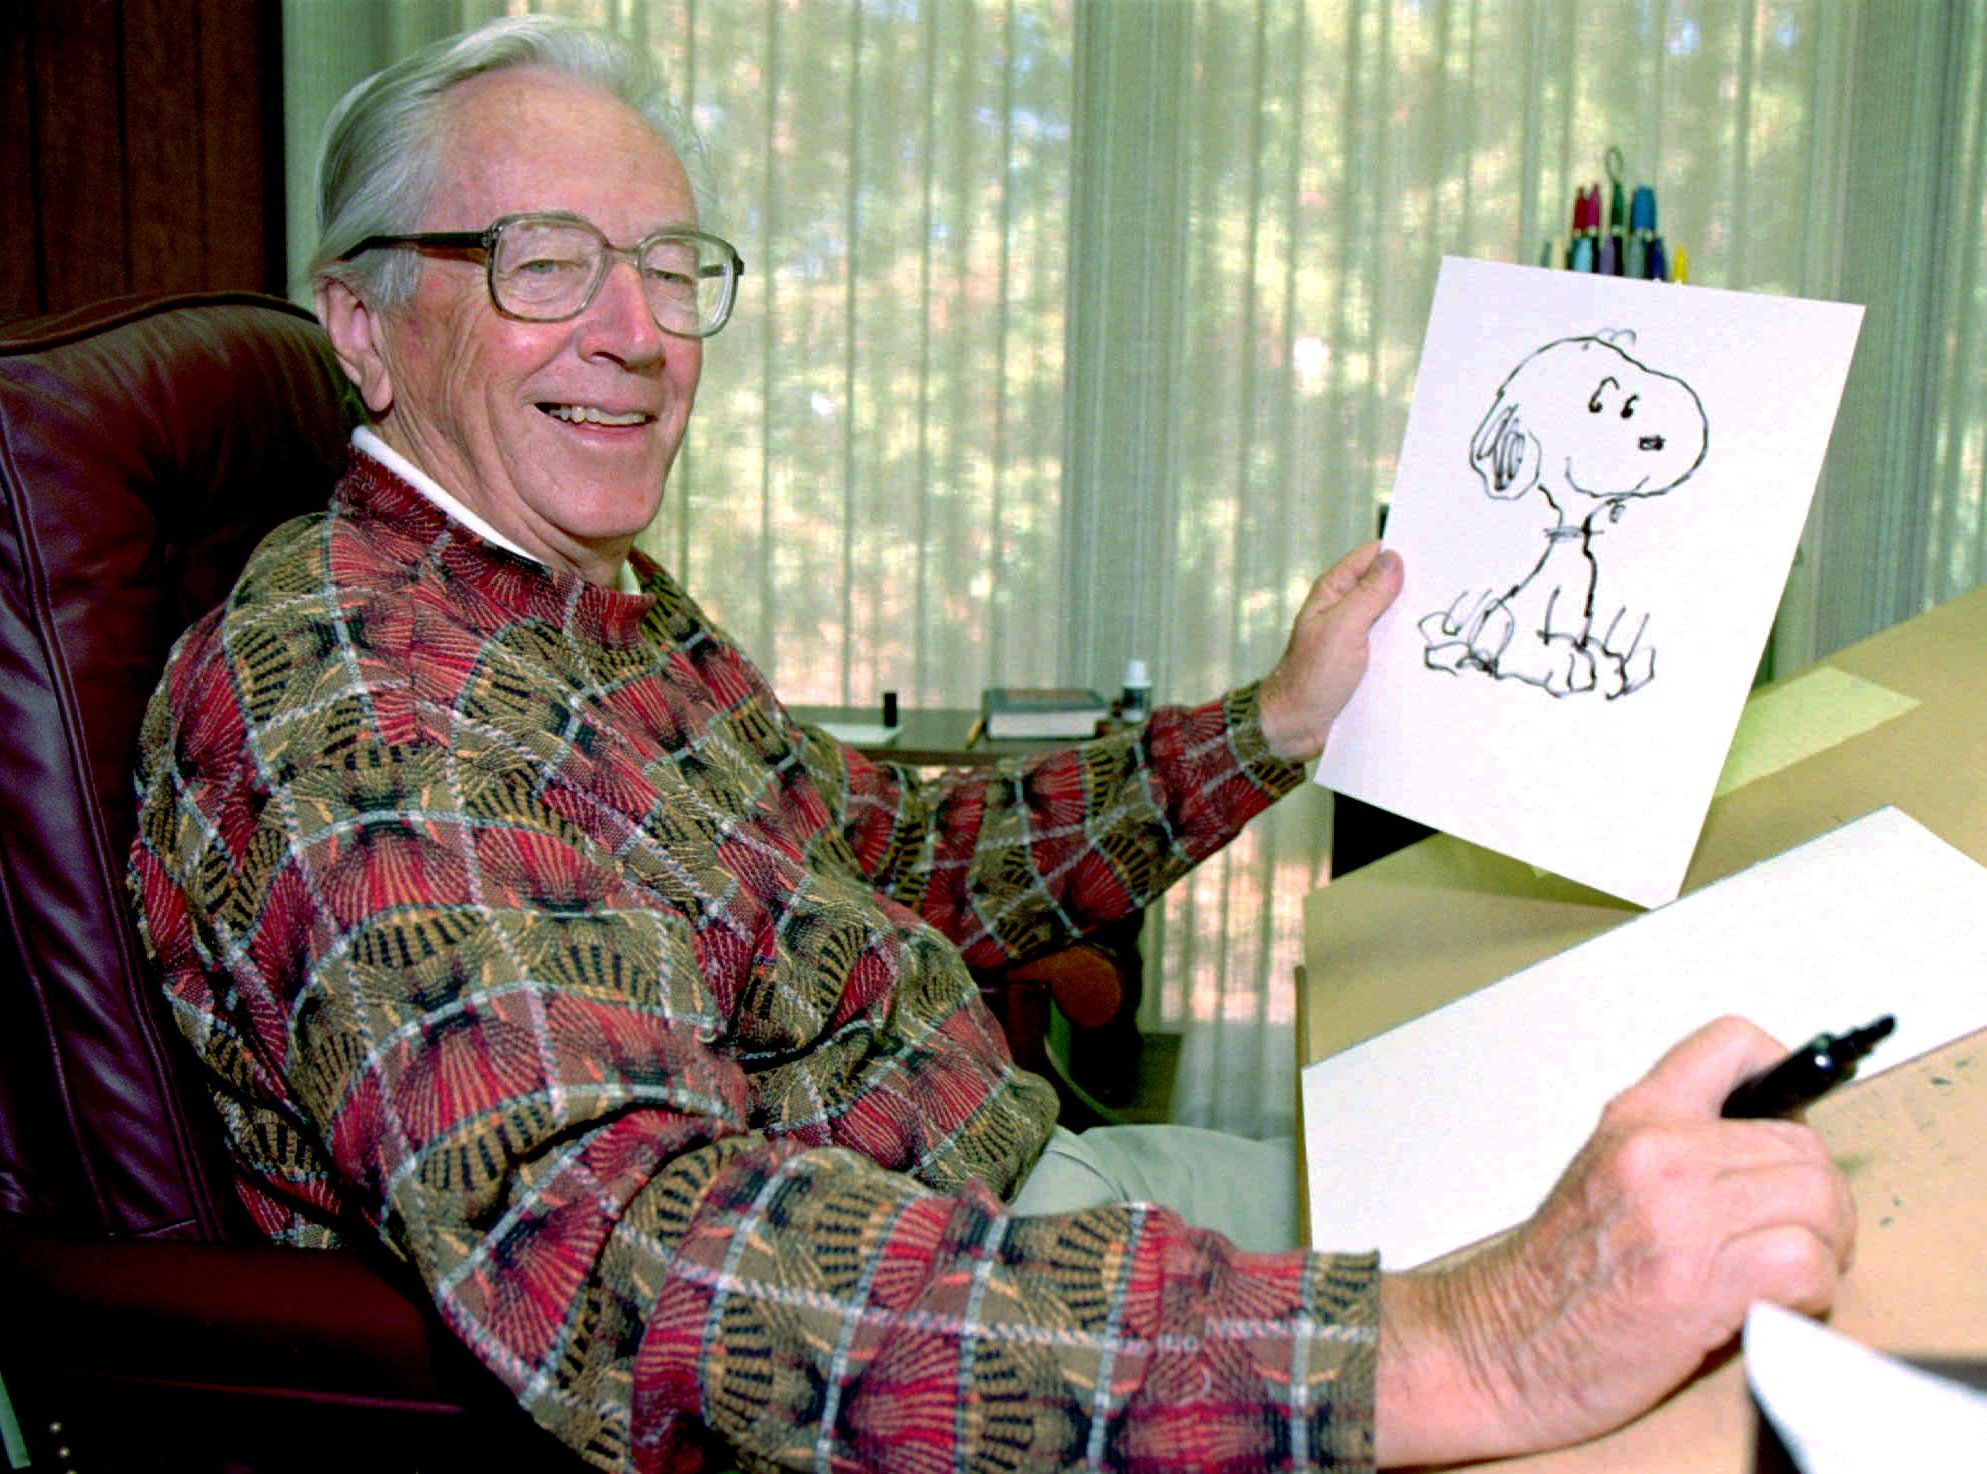 Charles Schulz (AP Photo / Ben Margot)